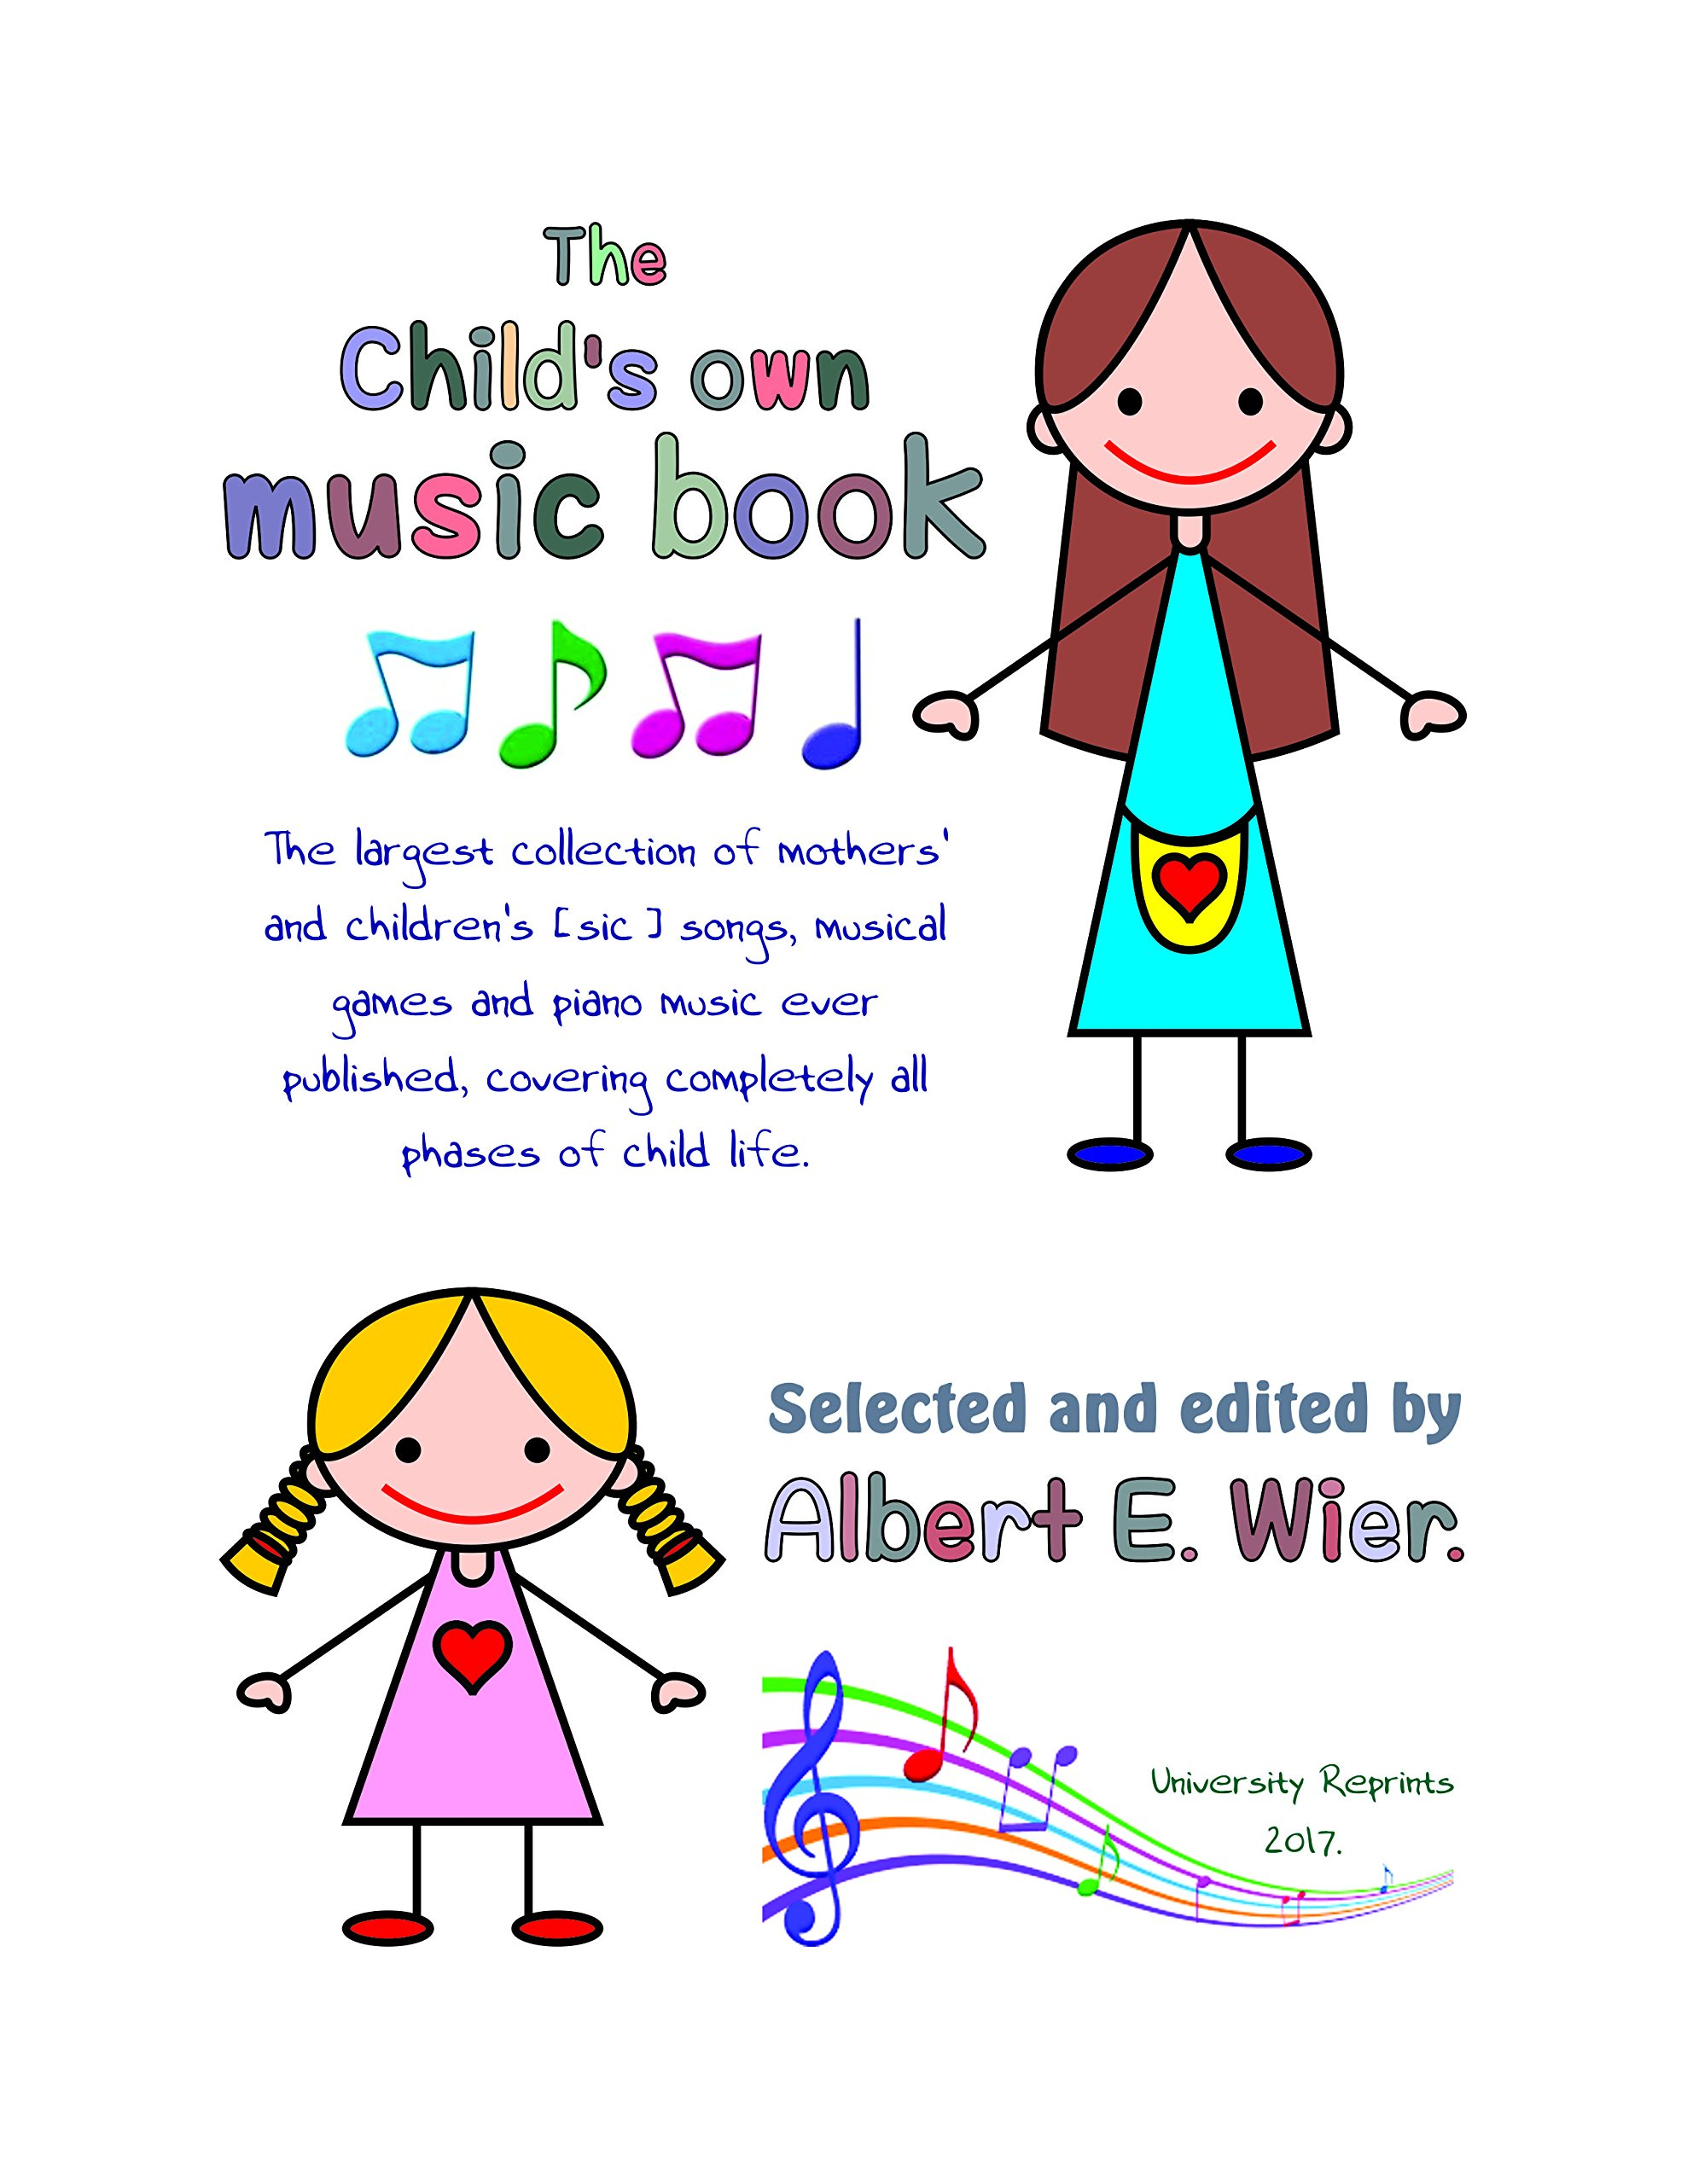 Download The child's own music book - the largest collection of mothers' and childrens' songs, musical games and piano music ever published ... [Re-Imaged from Original, Loose Leaf 2017.] PDF